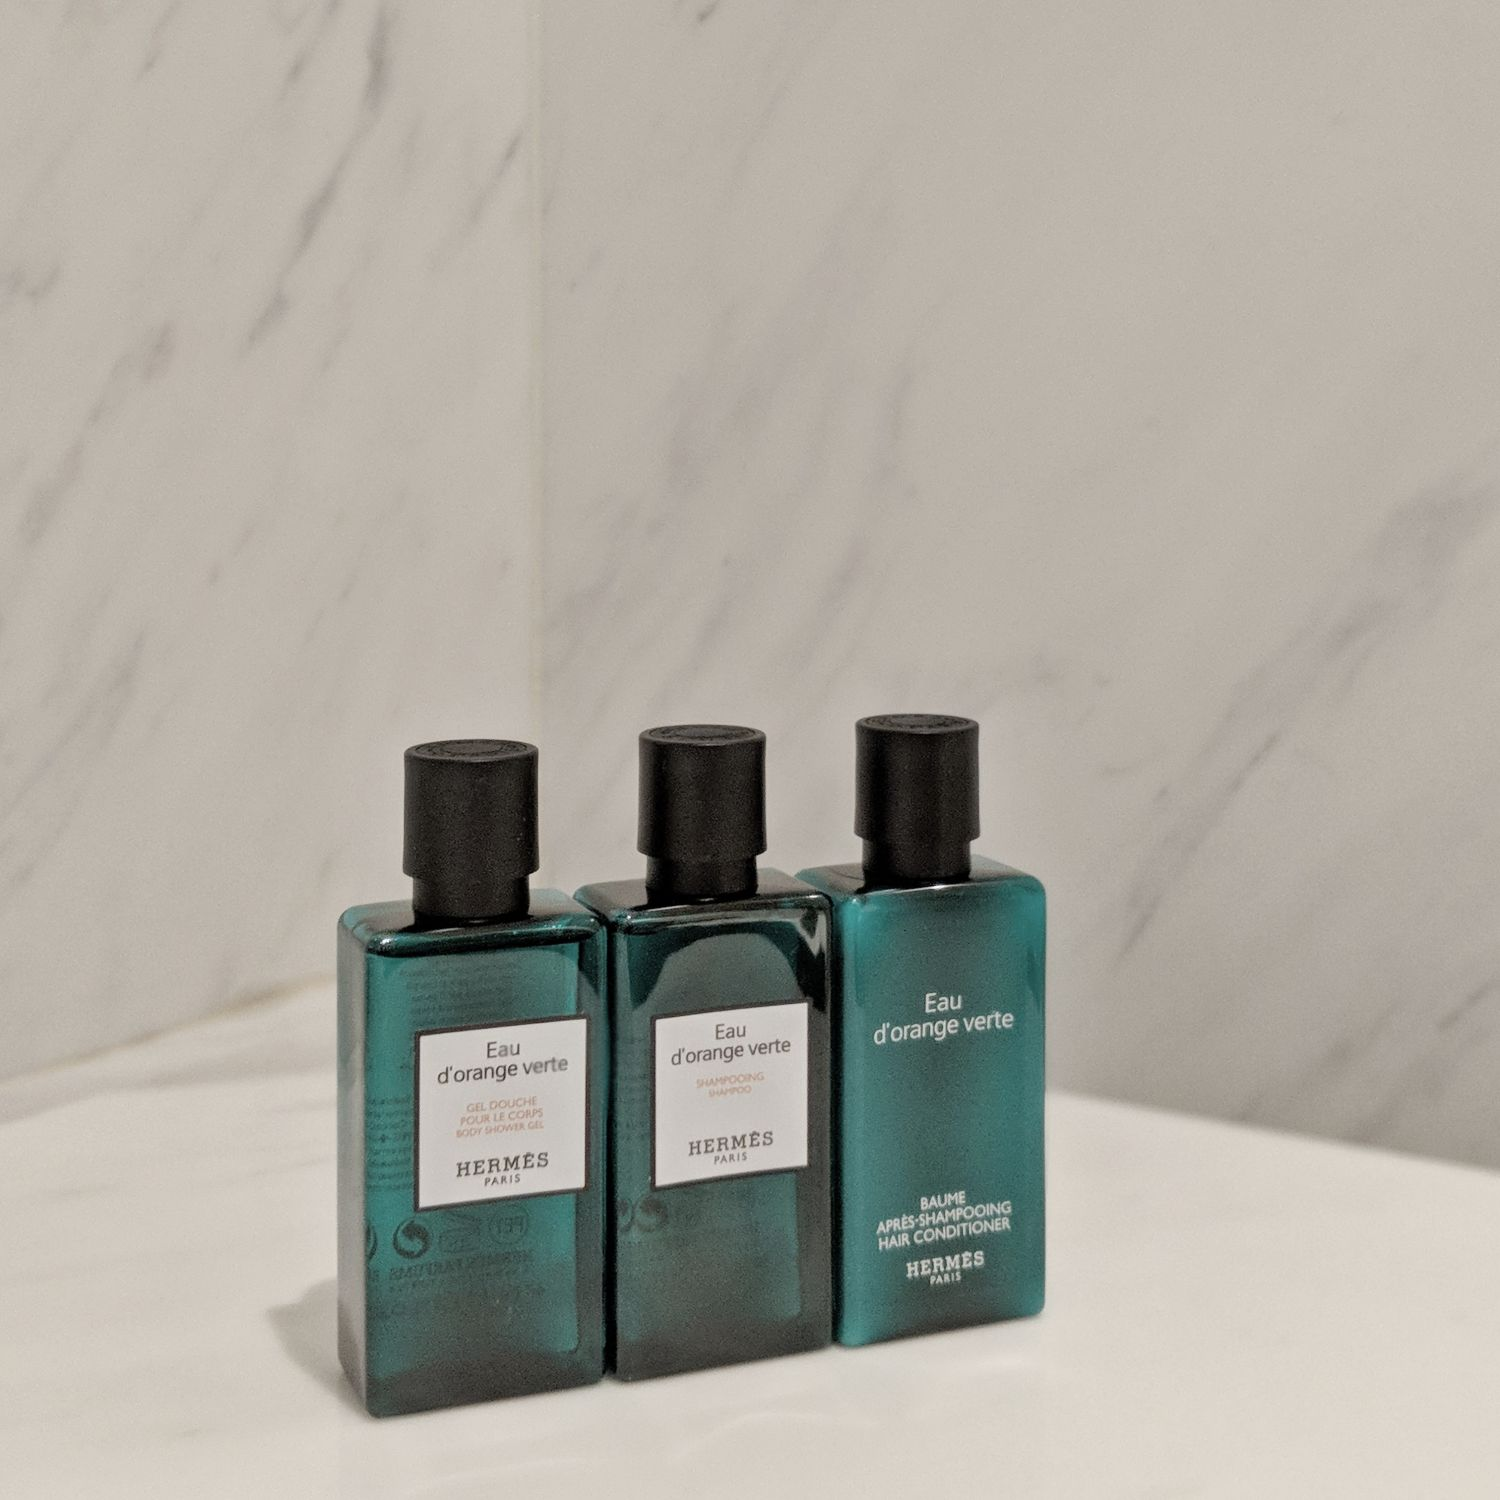 Sofitel Singapore City Centre prestige suite bathroom bathroom amenities